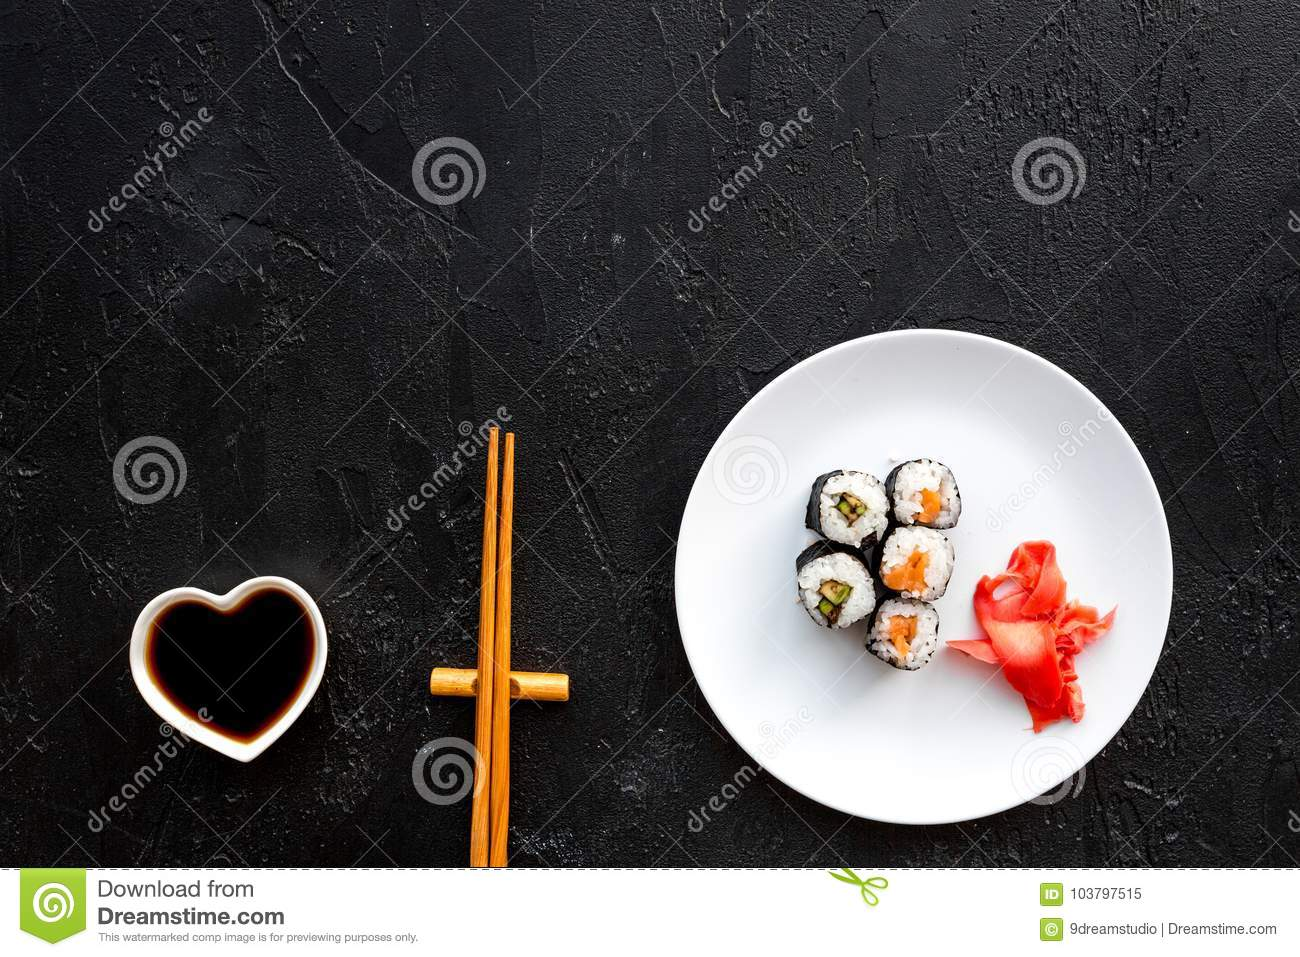 Sushi roll with salmon and avocado on plate with soy sauce, chopstick, wasabi on black background top view copyspace